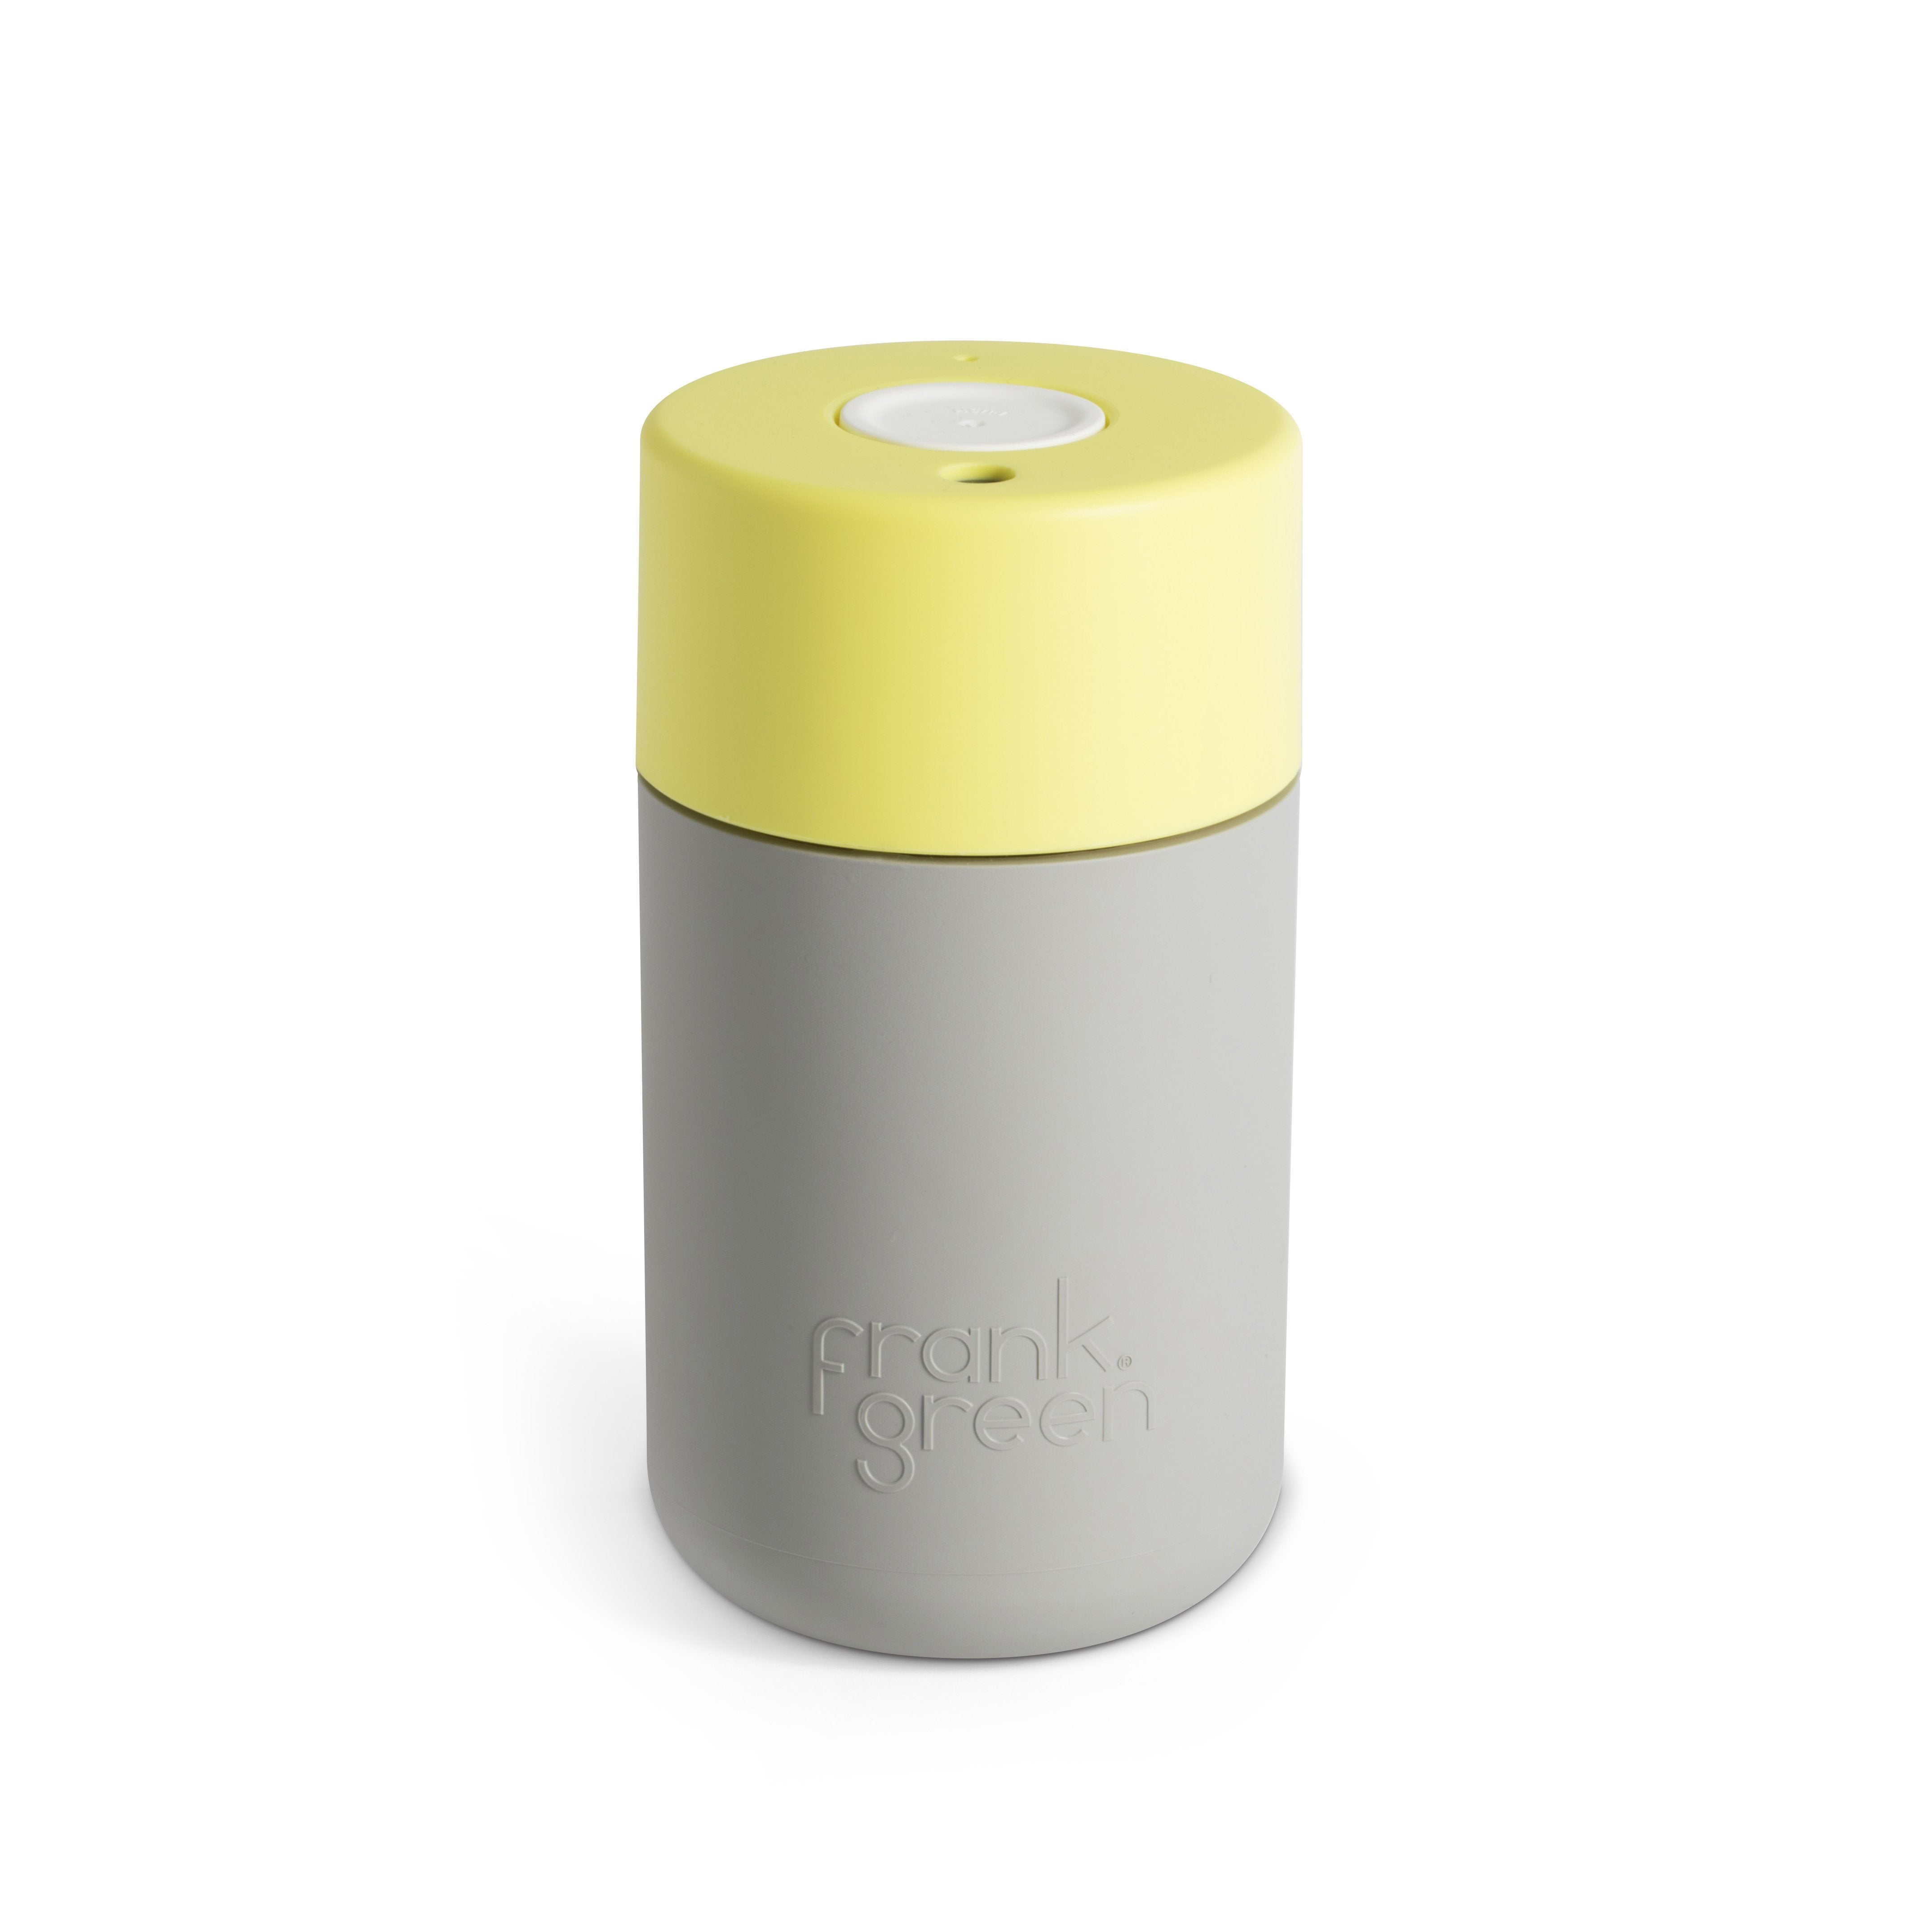 Frank Green - Smart Cup 12oz - Cool Grey / Pale Yellow / White Coffee Cup